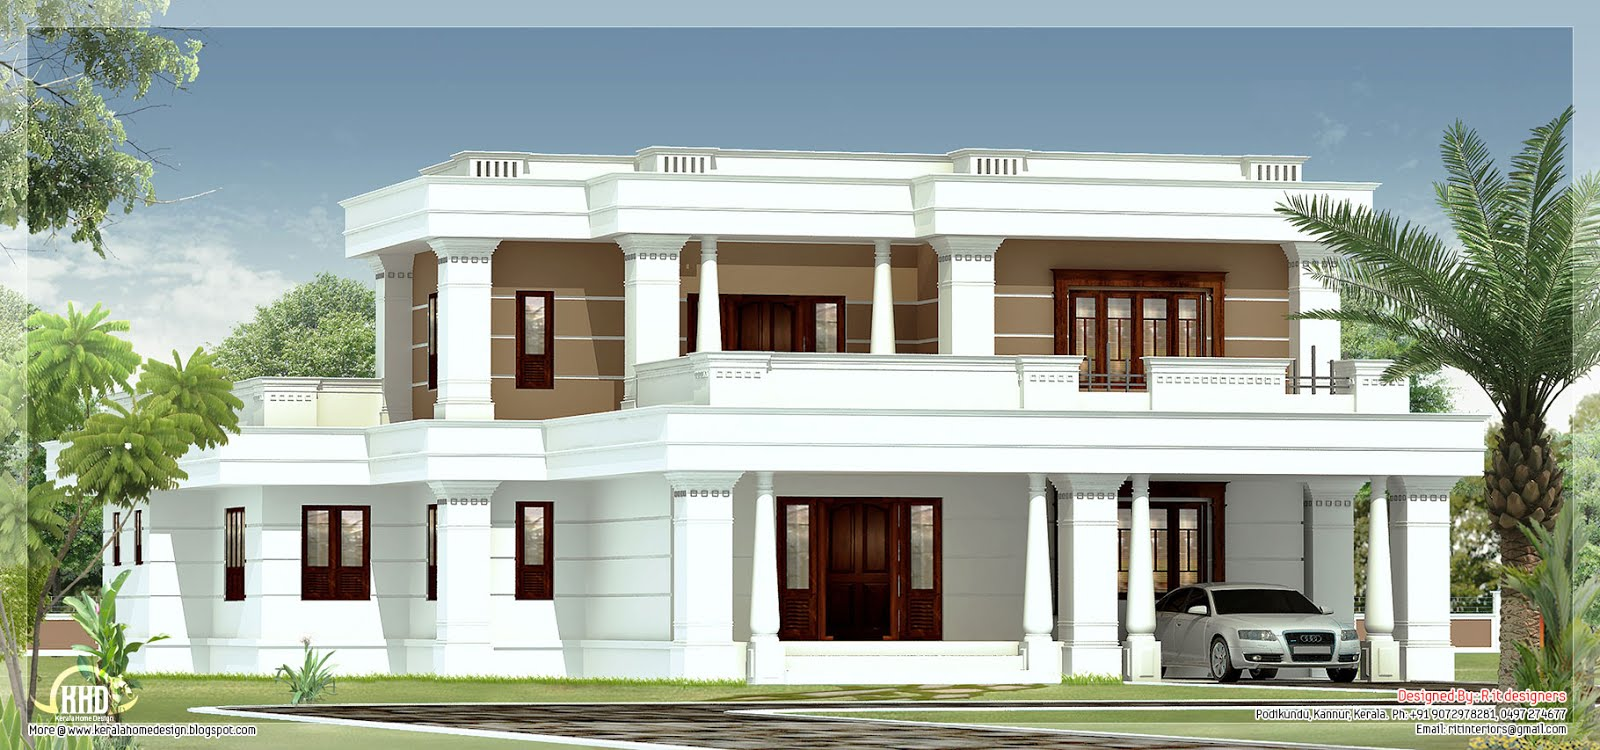 4 bedroom flat roof villa house design plans for Villa plans and designs